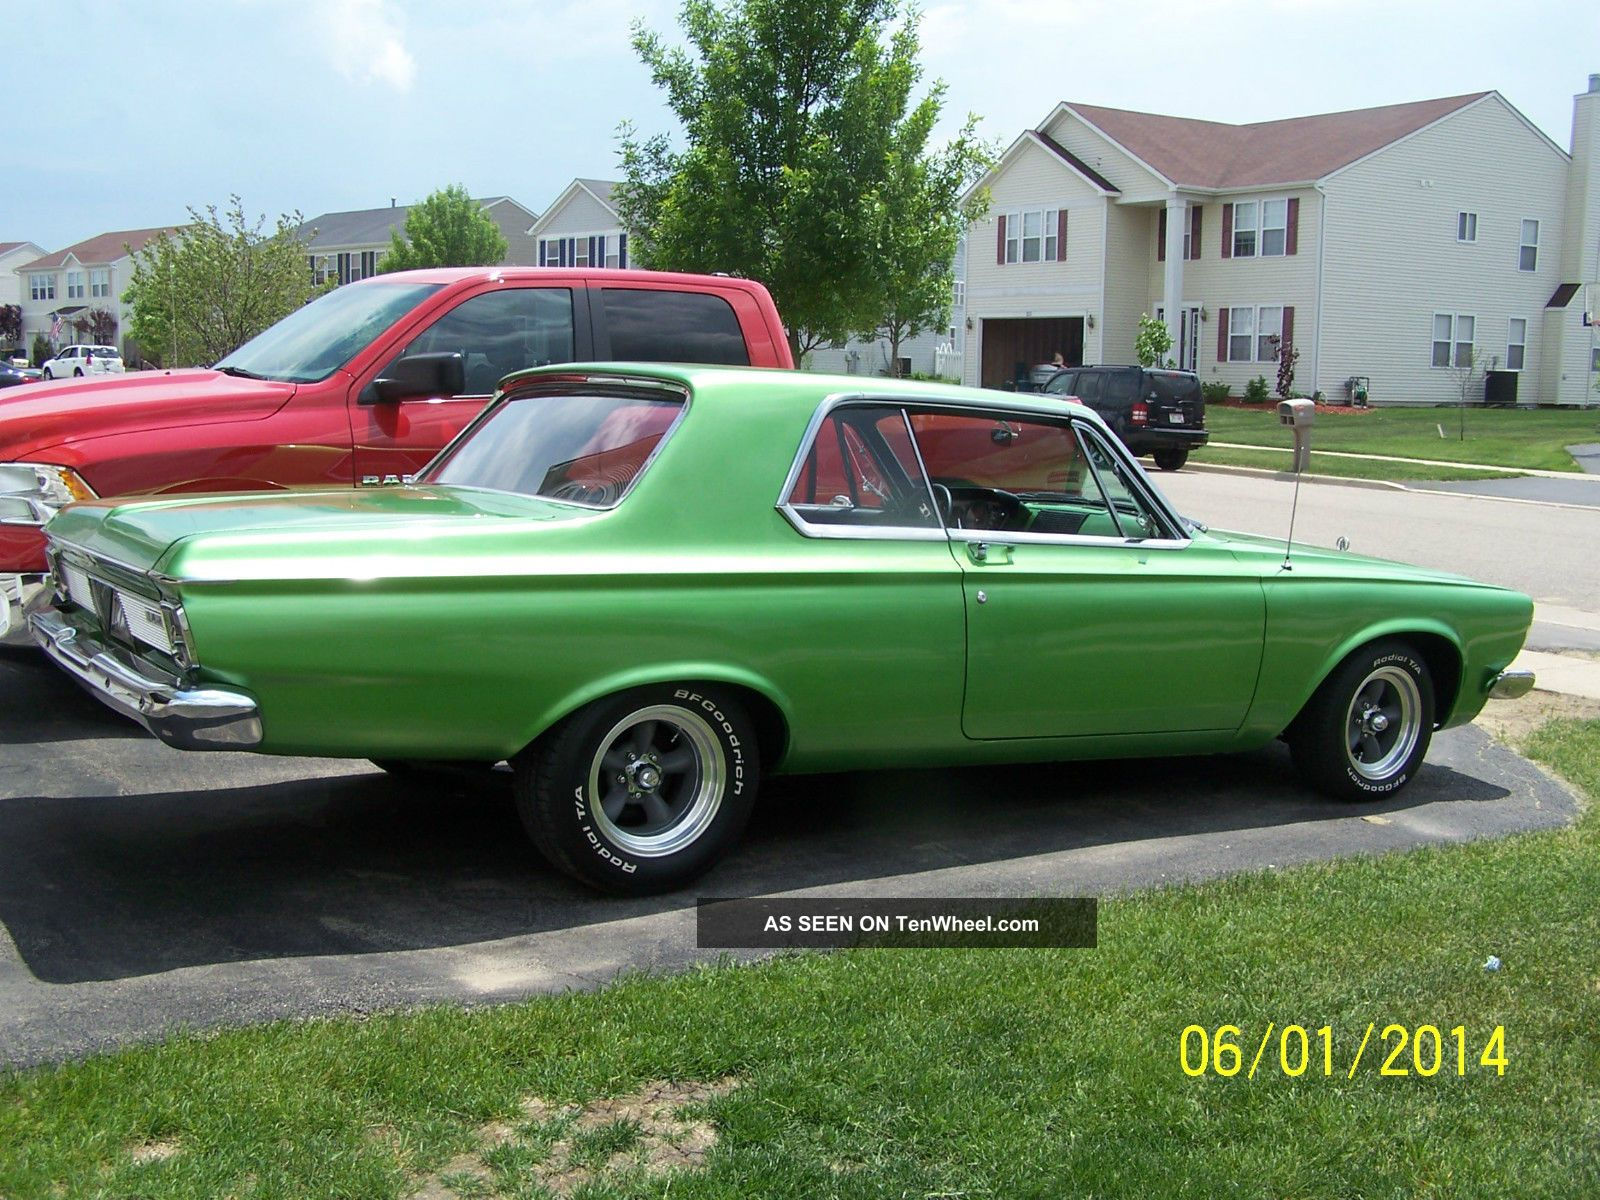 1963 Plymouth Fury Dodge Chrysler Mopar Fury photo